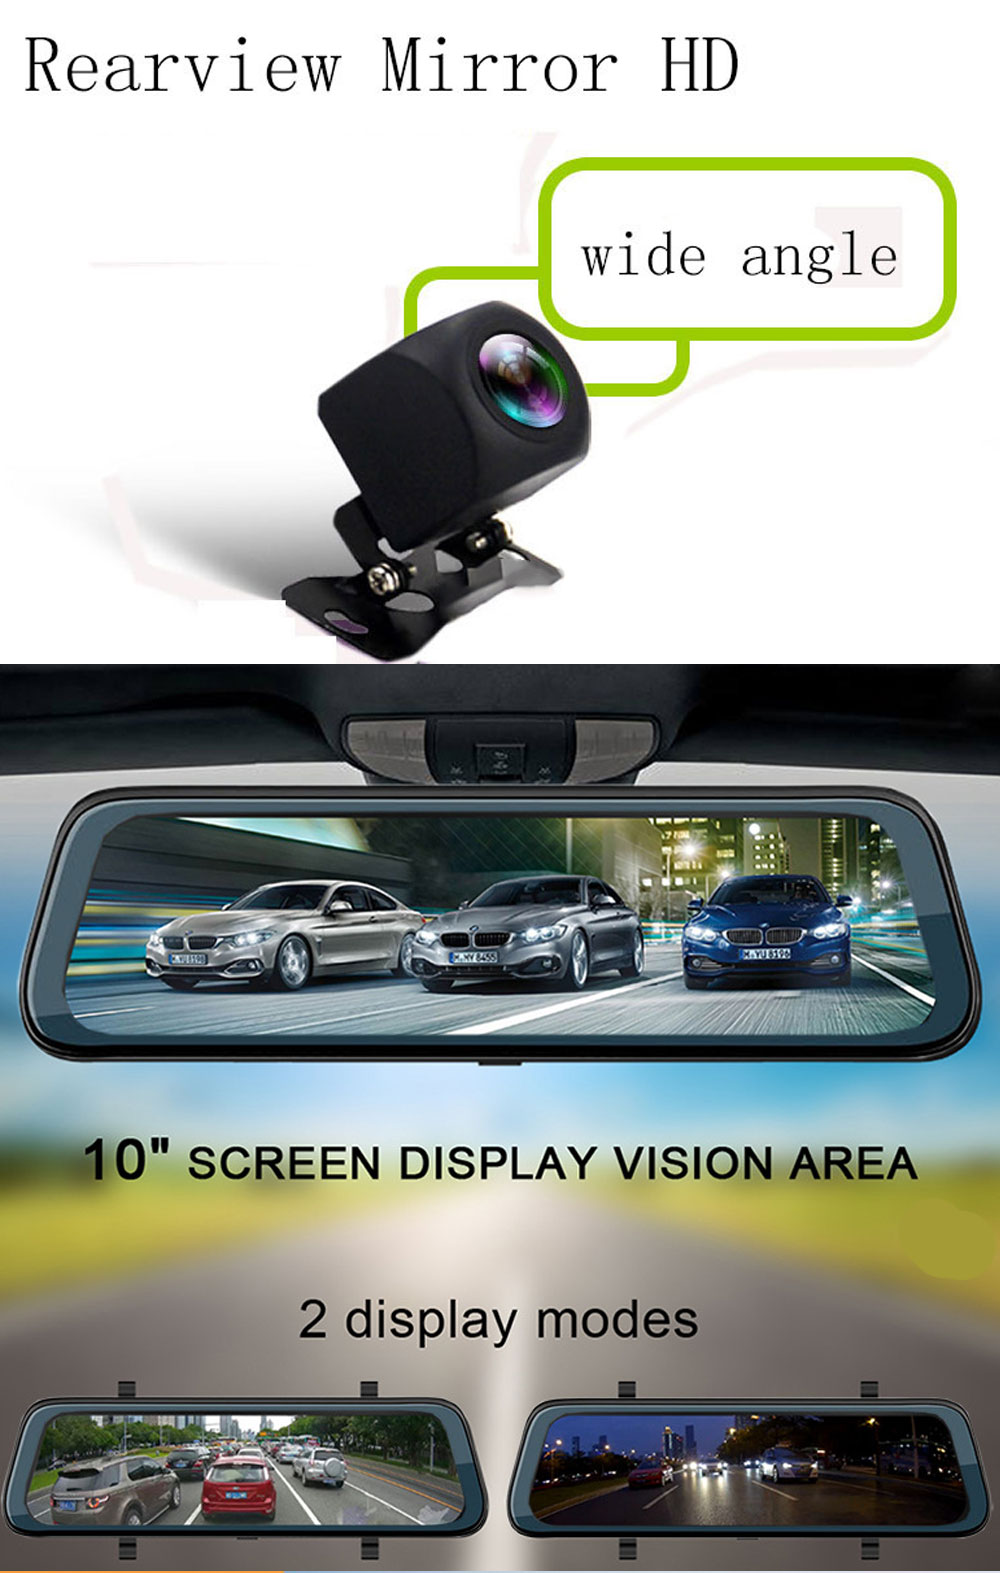 Back-looking Panoramic 360-degree Mirror Dash Cam Driving Recorder with Full HD 1080p Front and Rear 3